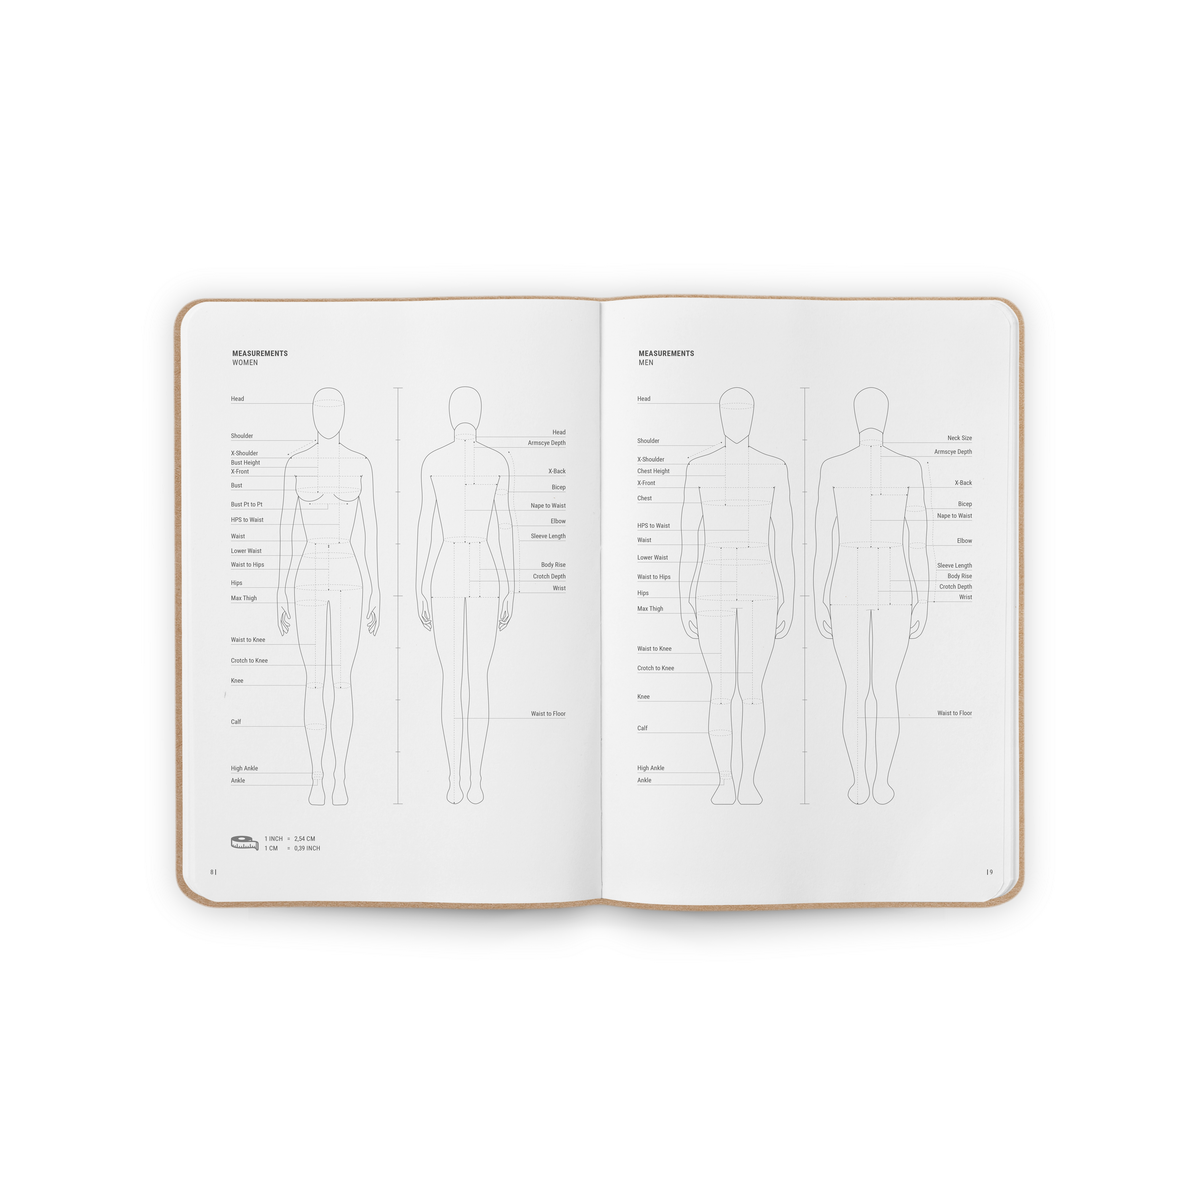 B-112_Fashion_Design-Notebook_Stationery_Spread1